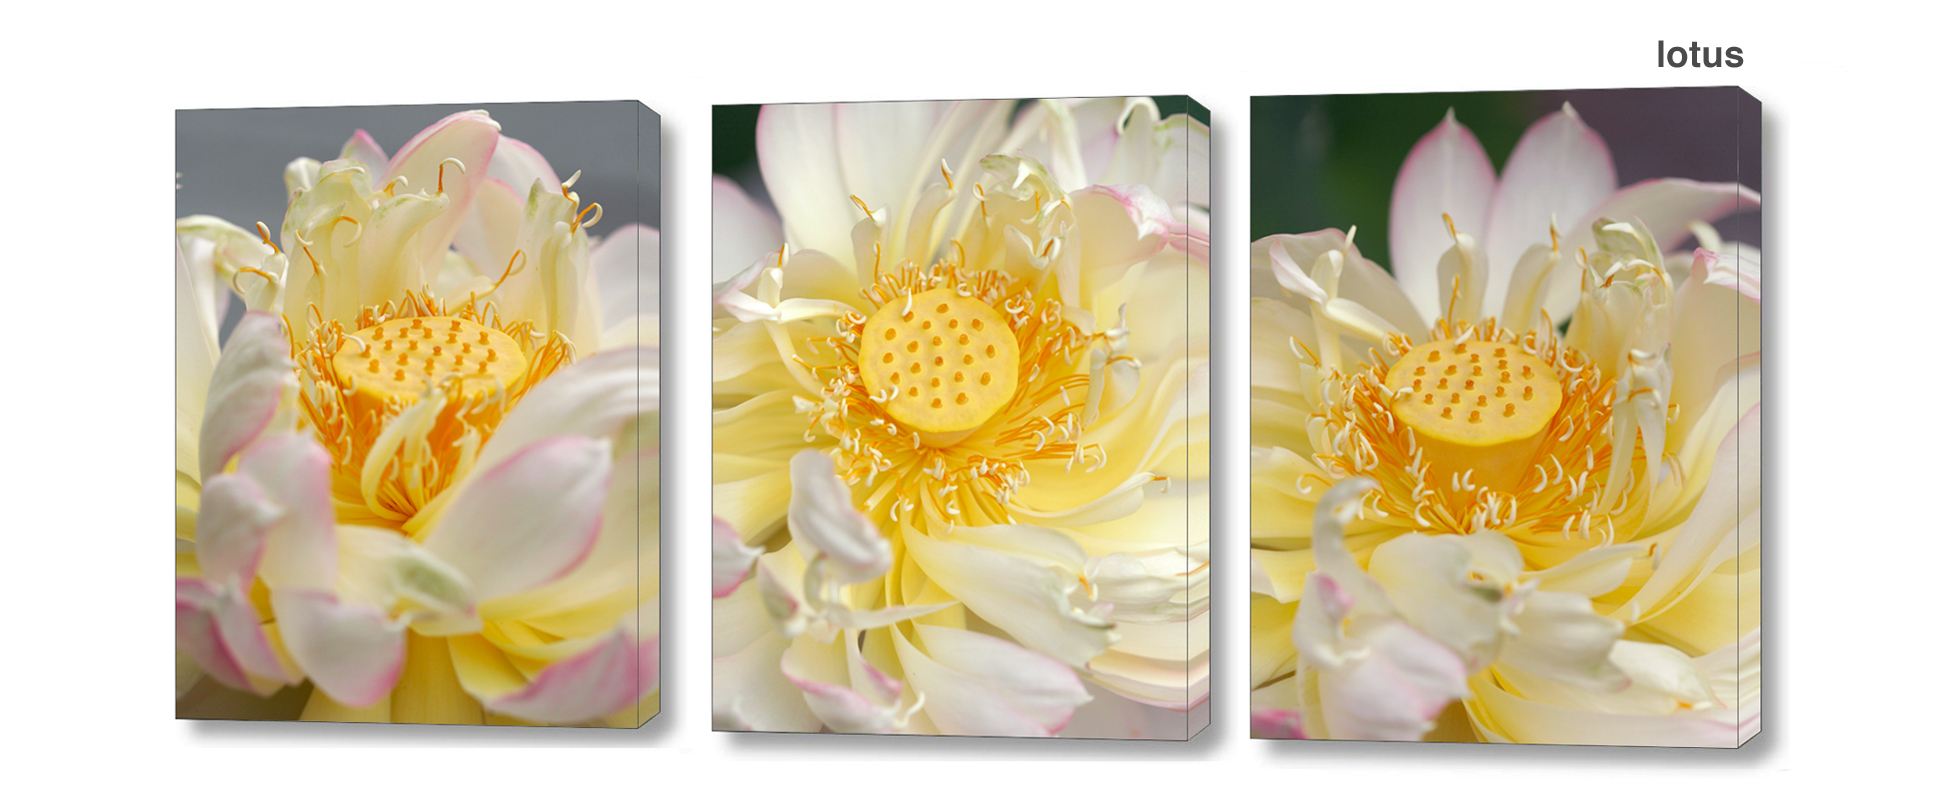 lotus series - Floral Series Wall Decor Macro Photography Matted & Giclée Canvas Prints